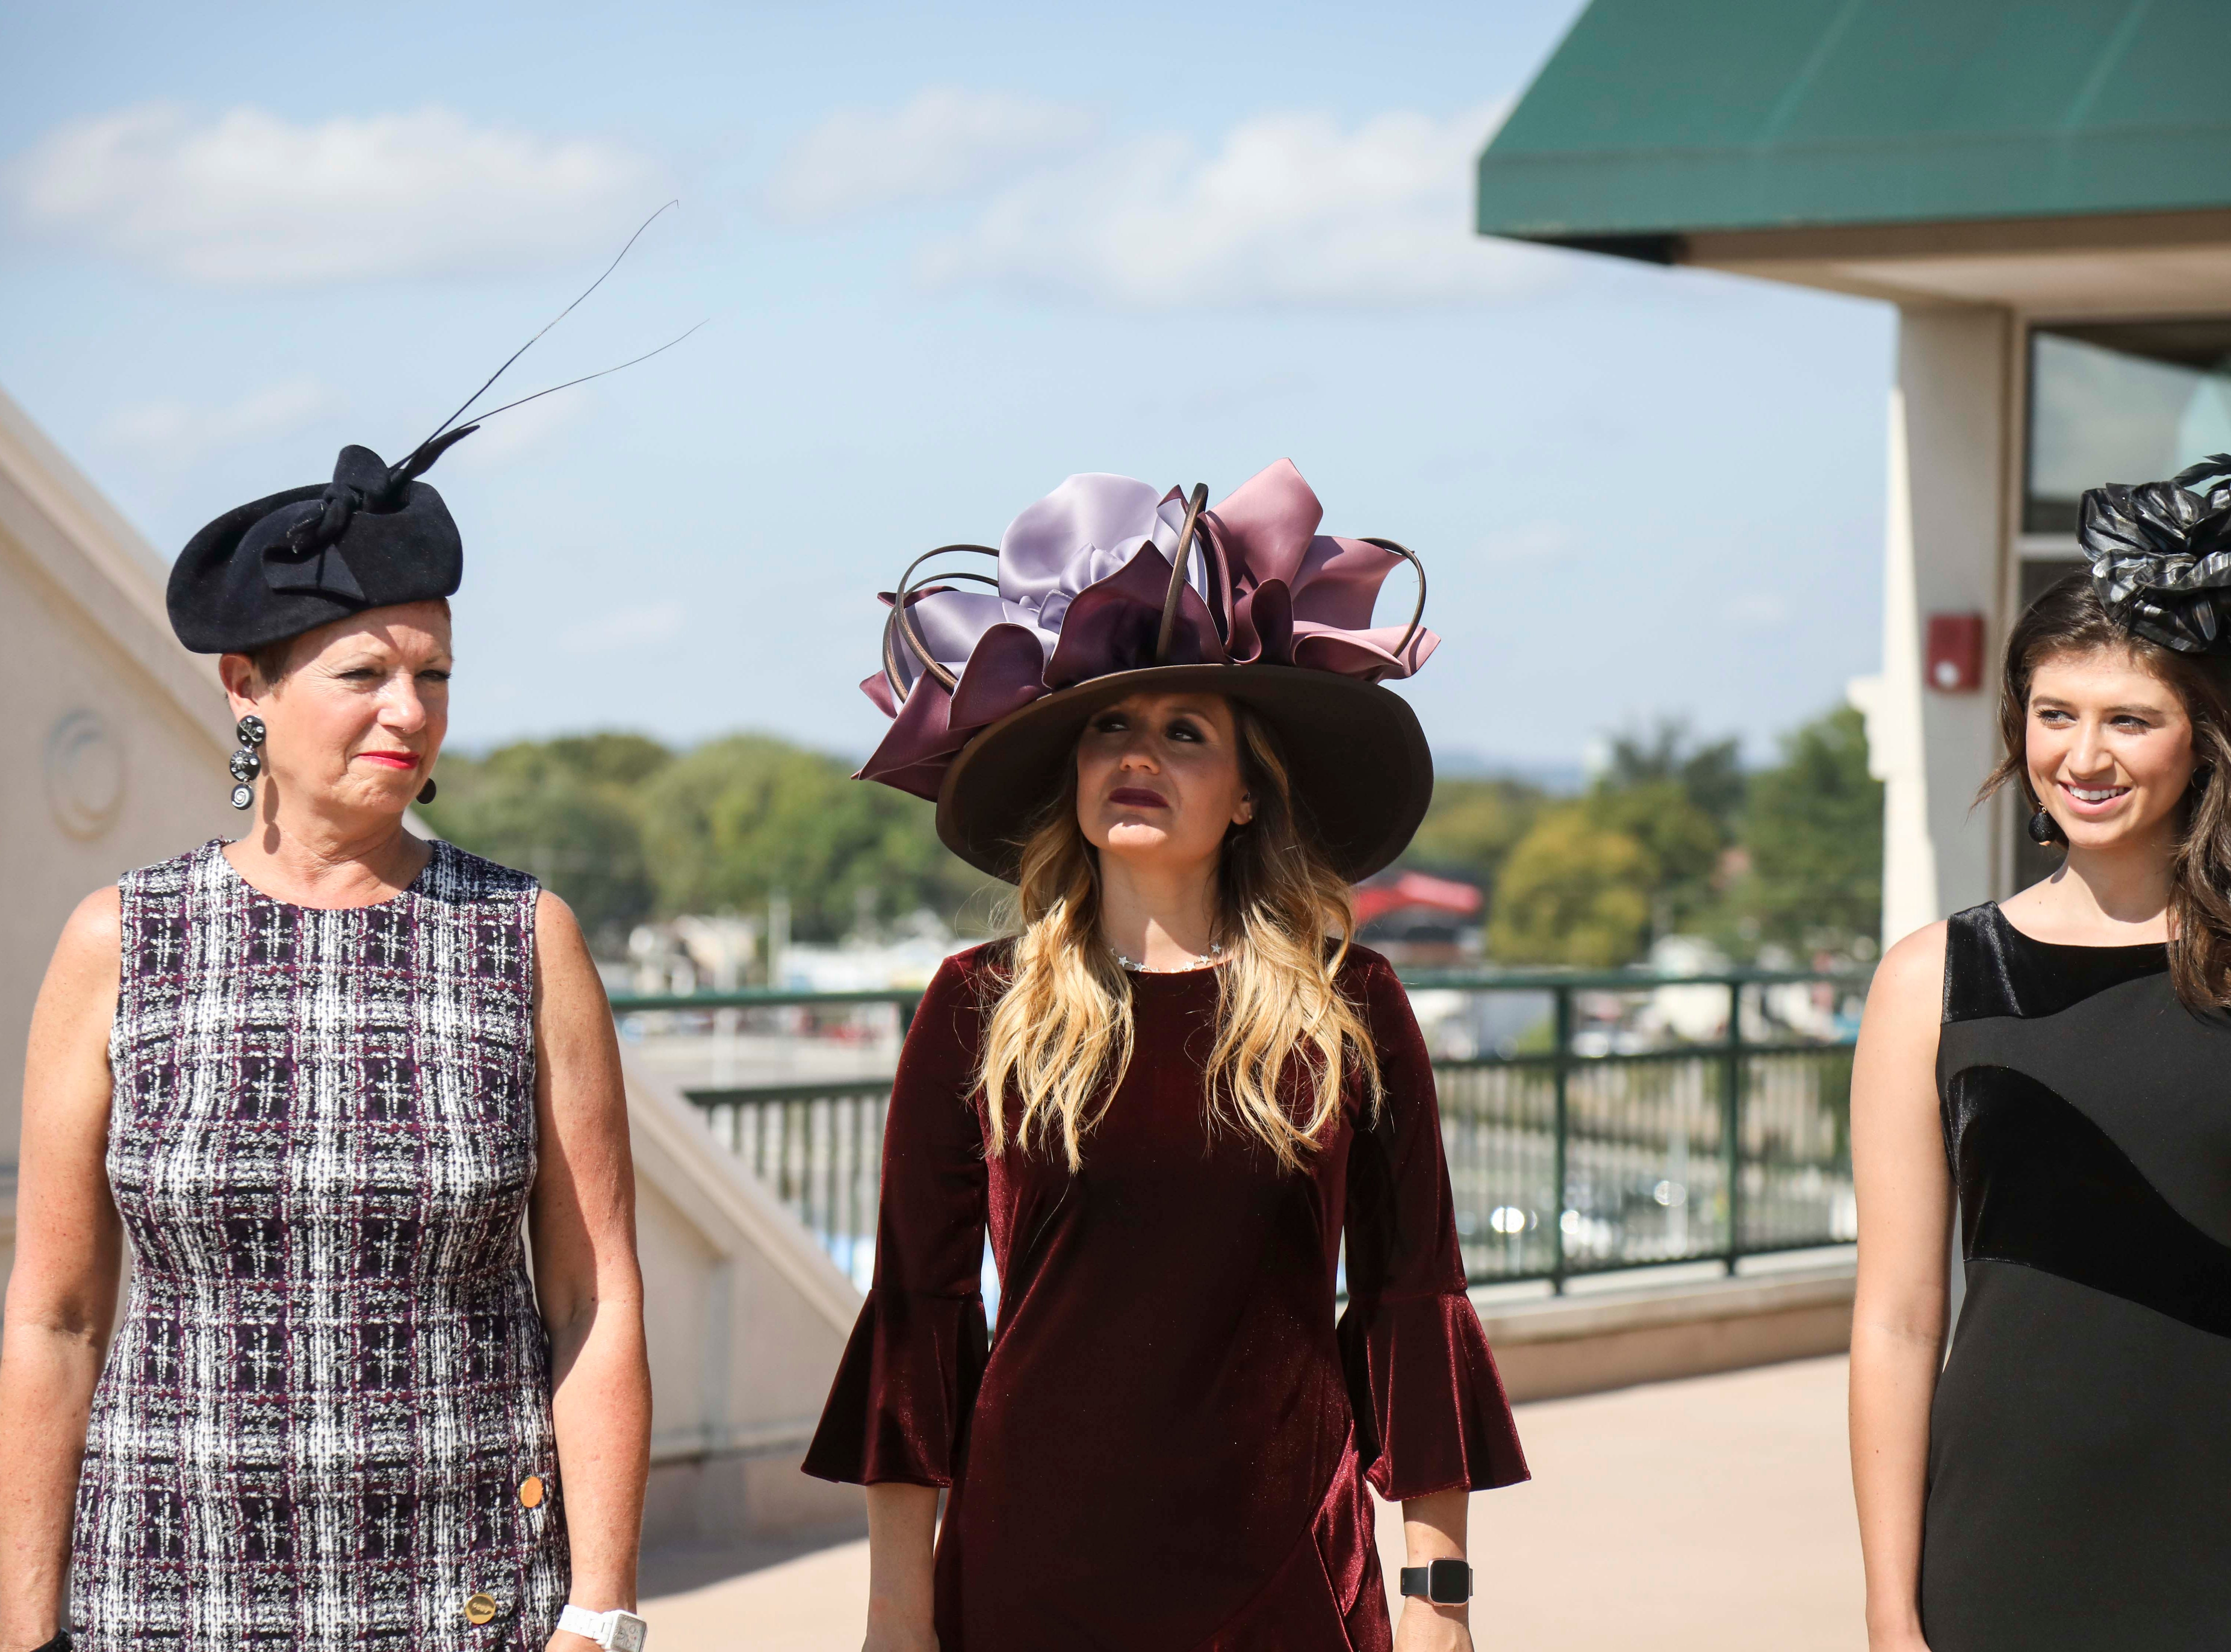 From left to right: Patty Ethington, Candice Isa and Katie Bouchard don hats made by Christine Moore, track fashion expert and owner of Cam Hats, during an interview with the Courier Journal ahead of the Breeders Cup (November 3) at Churchill Downs on Wednesday, October 3, 2018.